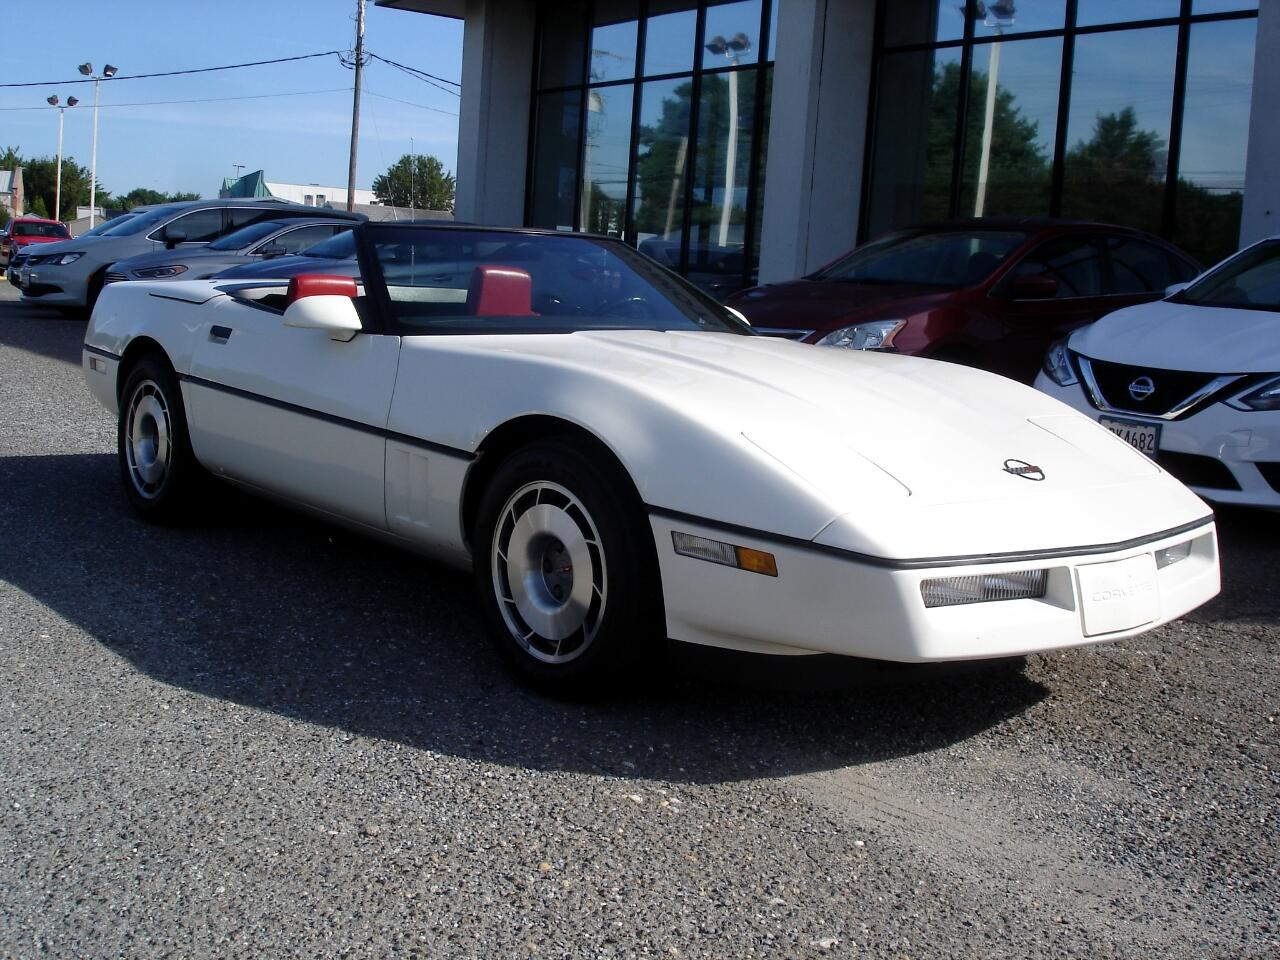 Chevrolet Corvette 2dr Convertible 1987